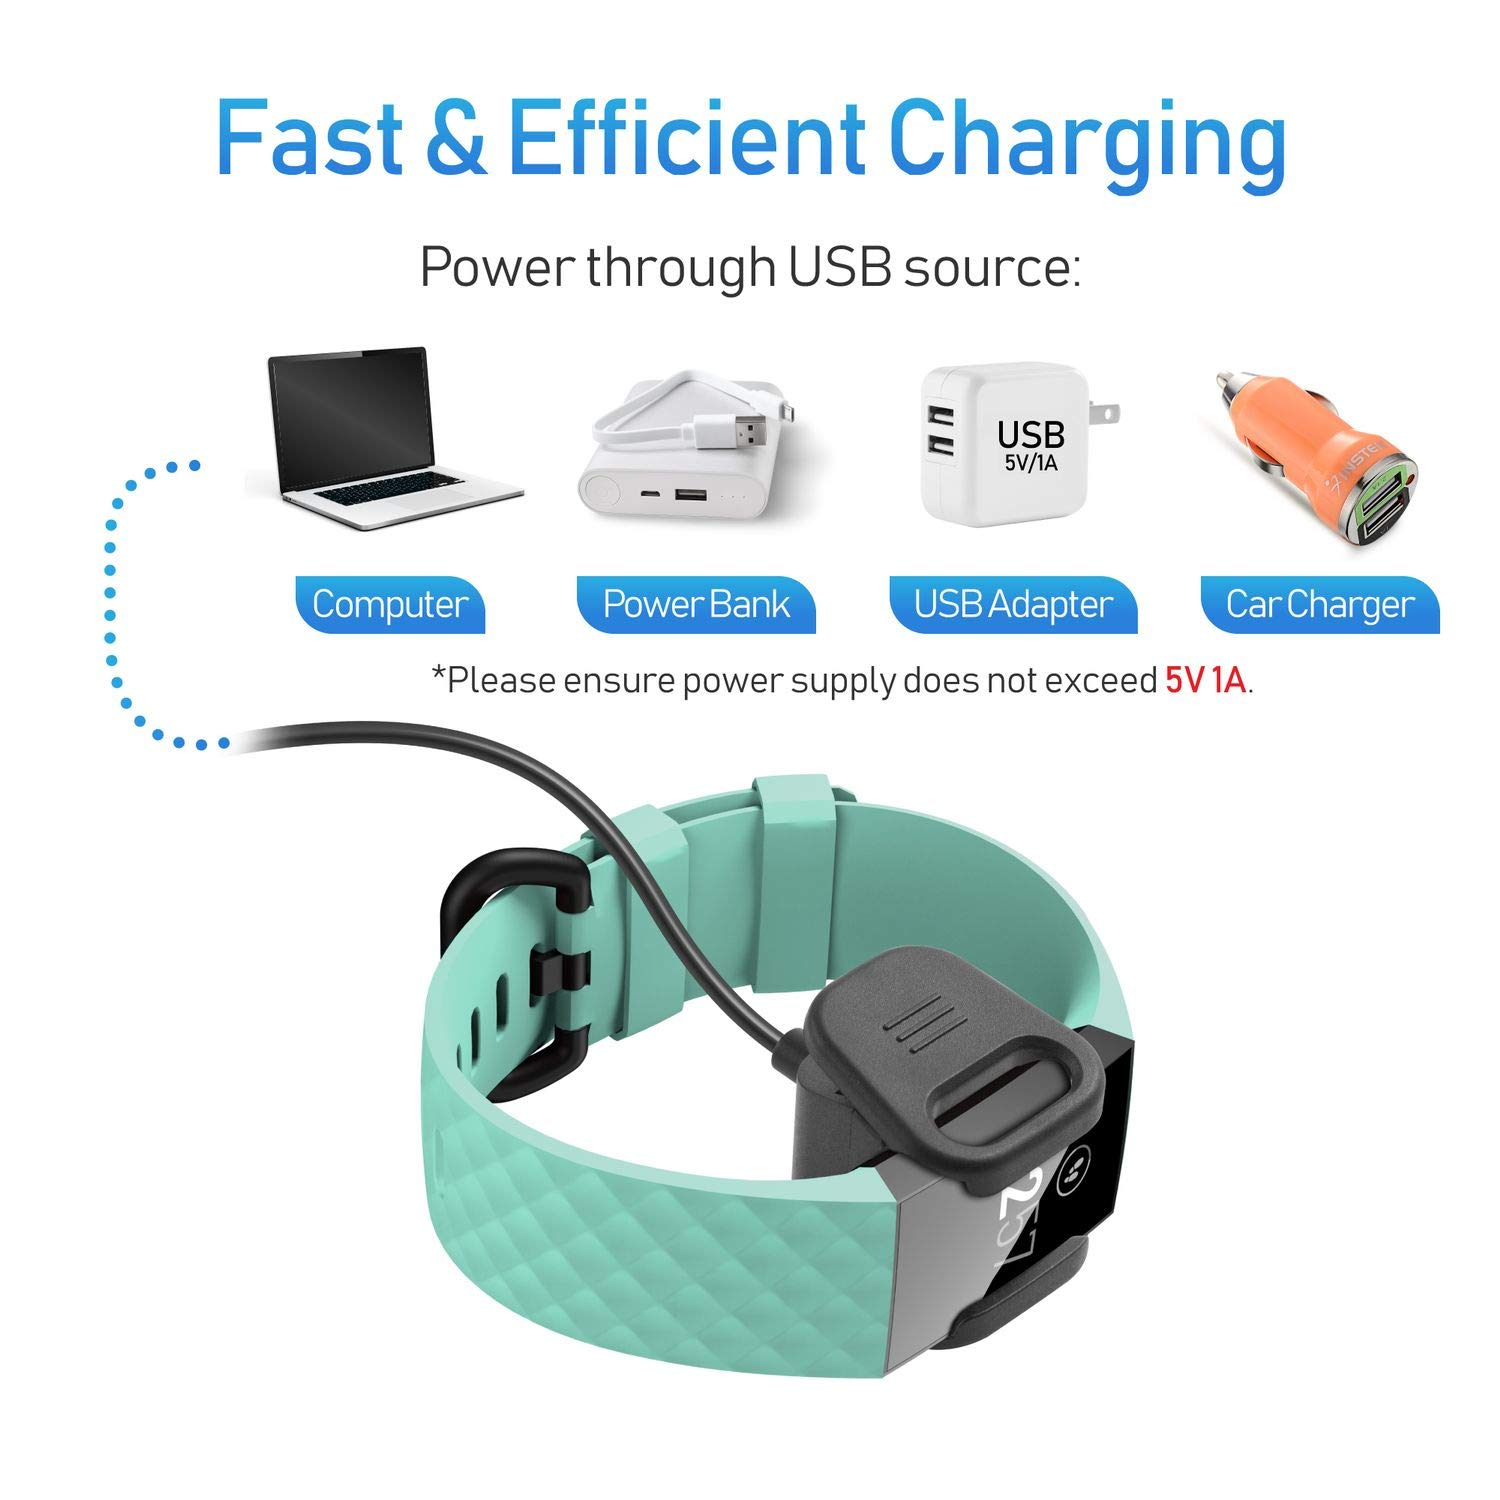 12 Inch Insten Charger for Fitbit Charge 3 Charge 3 Special Edition SE Wireless Fitness Tracker Band 1-Pack Replacement USB Charging Cable Cord Cradle Dock Adapter Compatible with Fitbit Charge 3